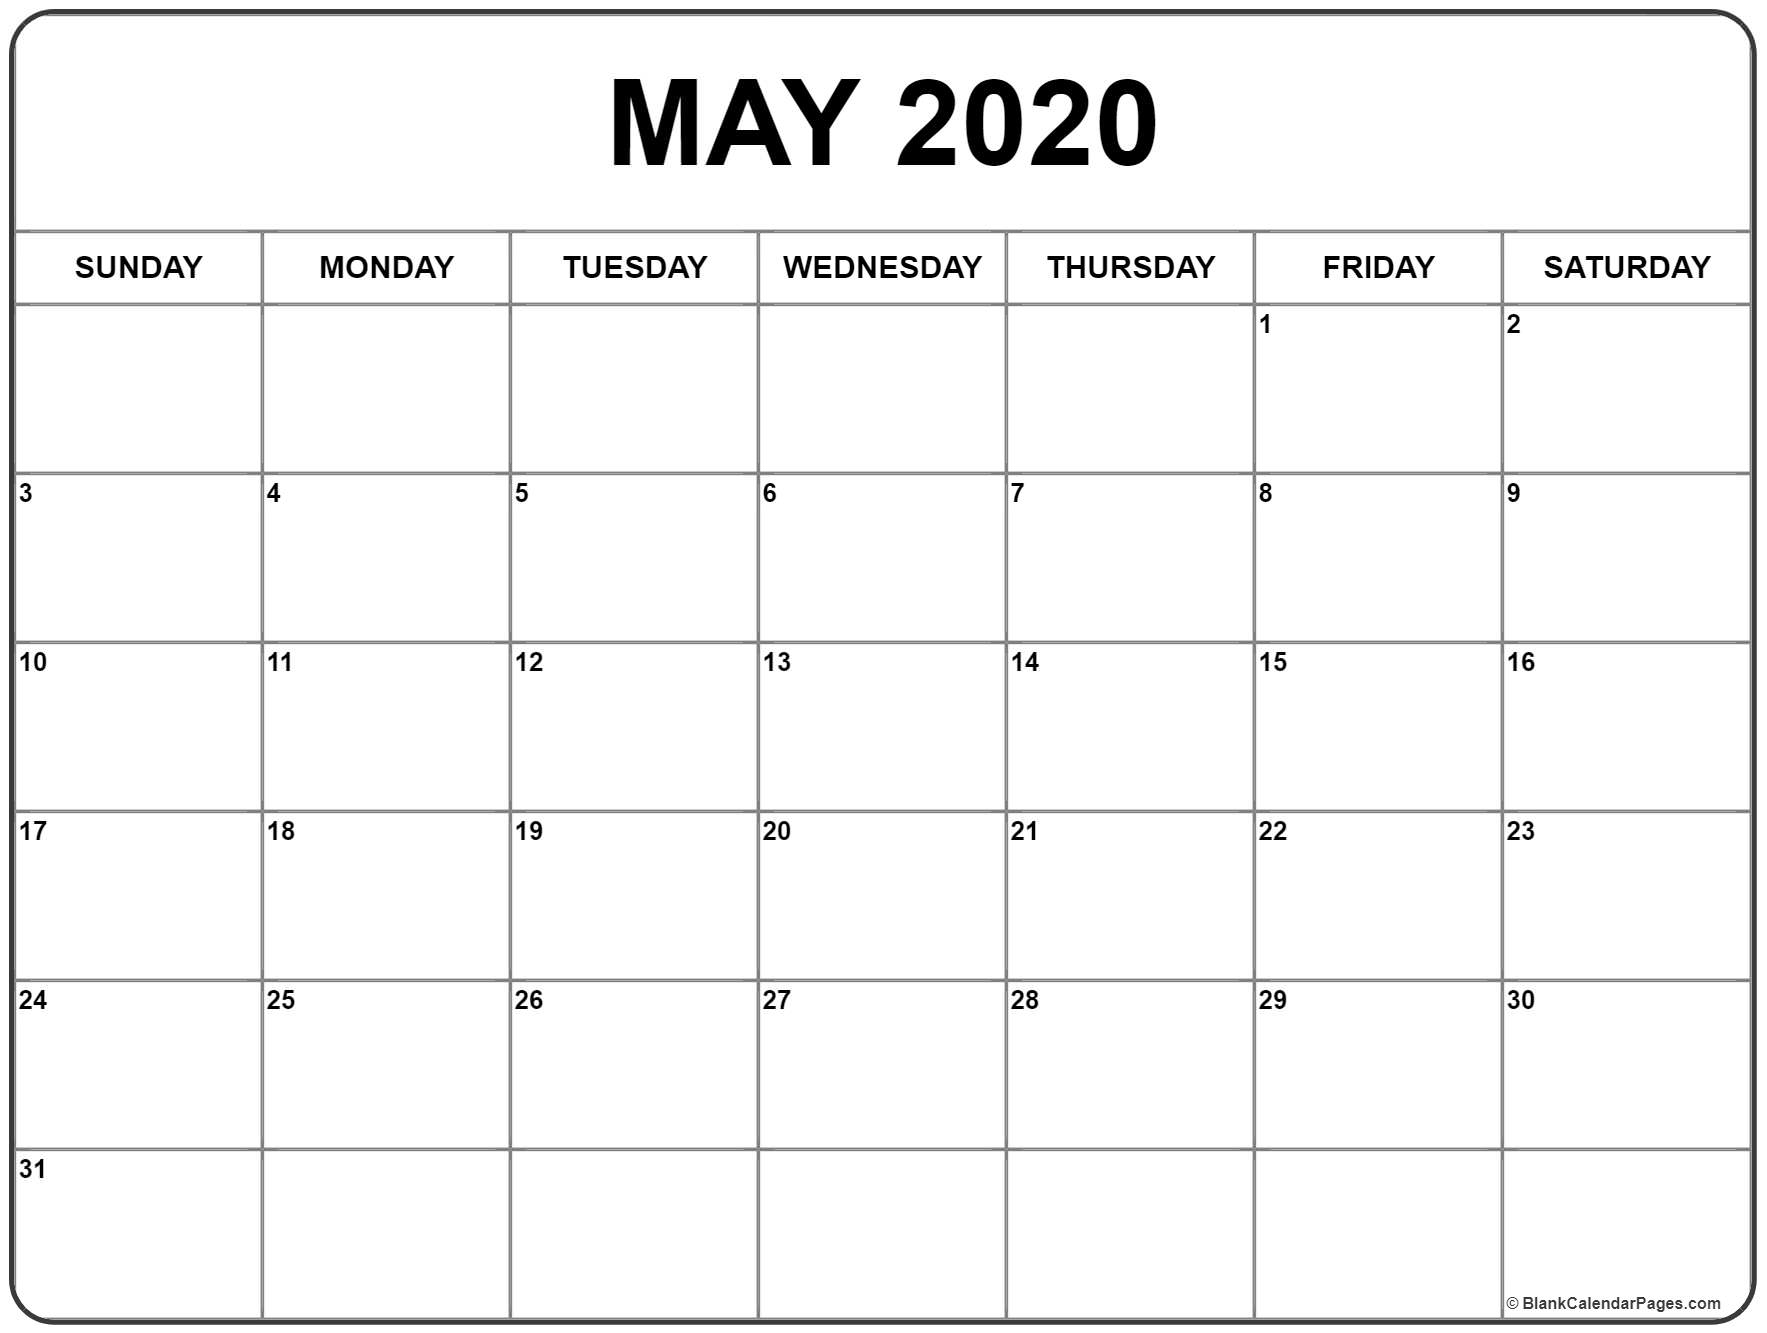 May 2020 Calendar | Free Printable Monthly Calendars inside 2020 Calendar Format Monday Through Friday Week